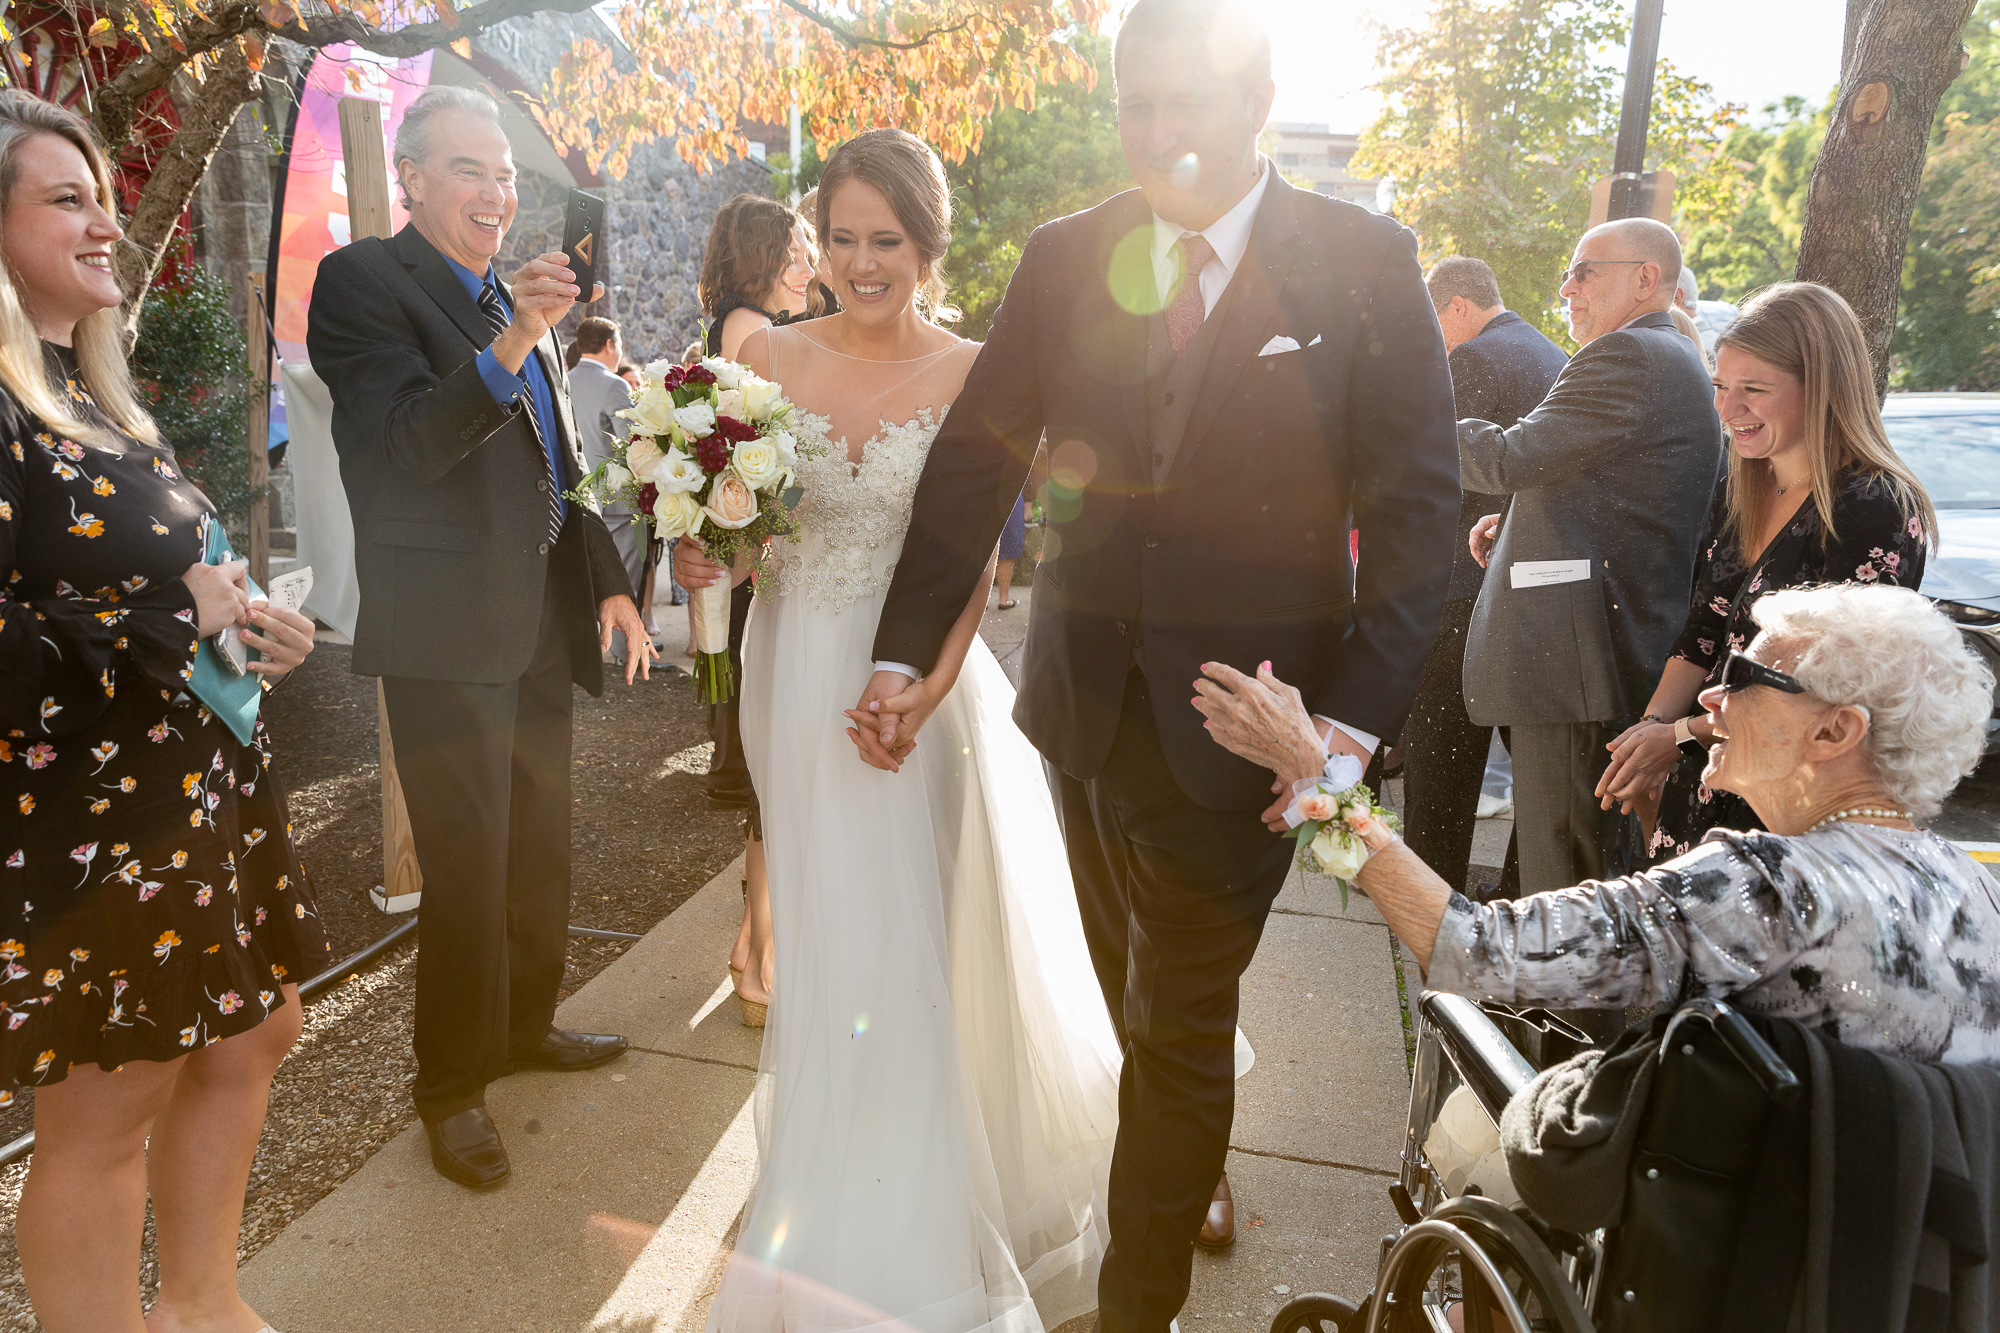 Classic wedding at the Morris Museum, Morristown, NJ